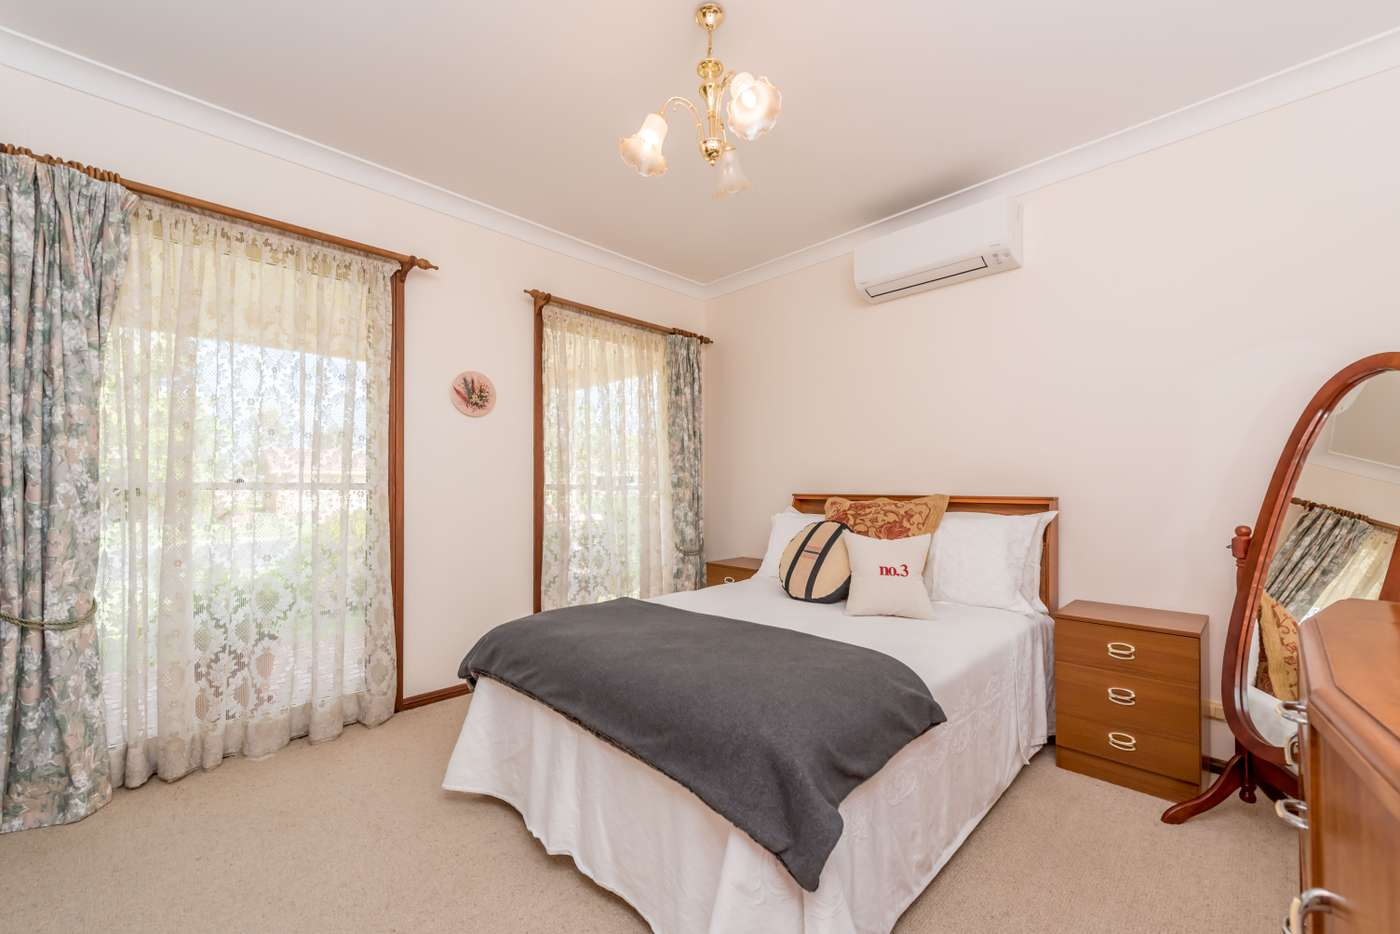 Sixth view of Homely house listing, 44 Mulgoa Way, Mudgee NSW 2850